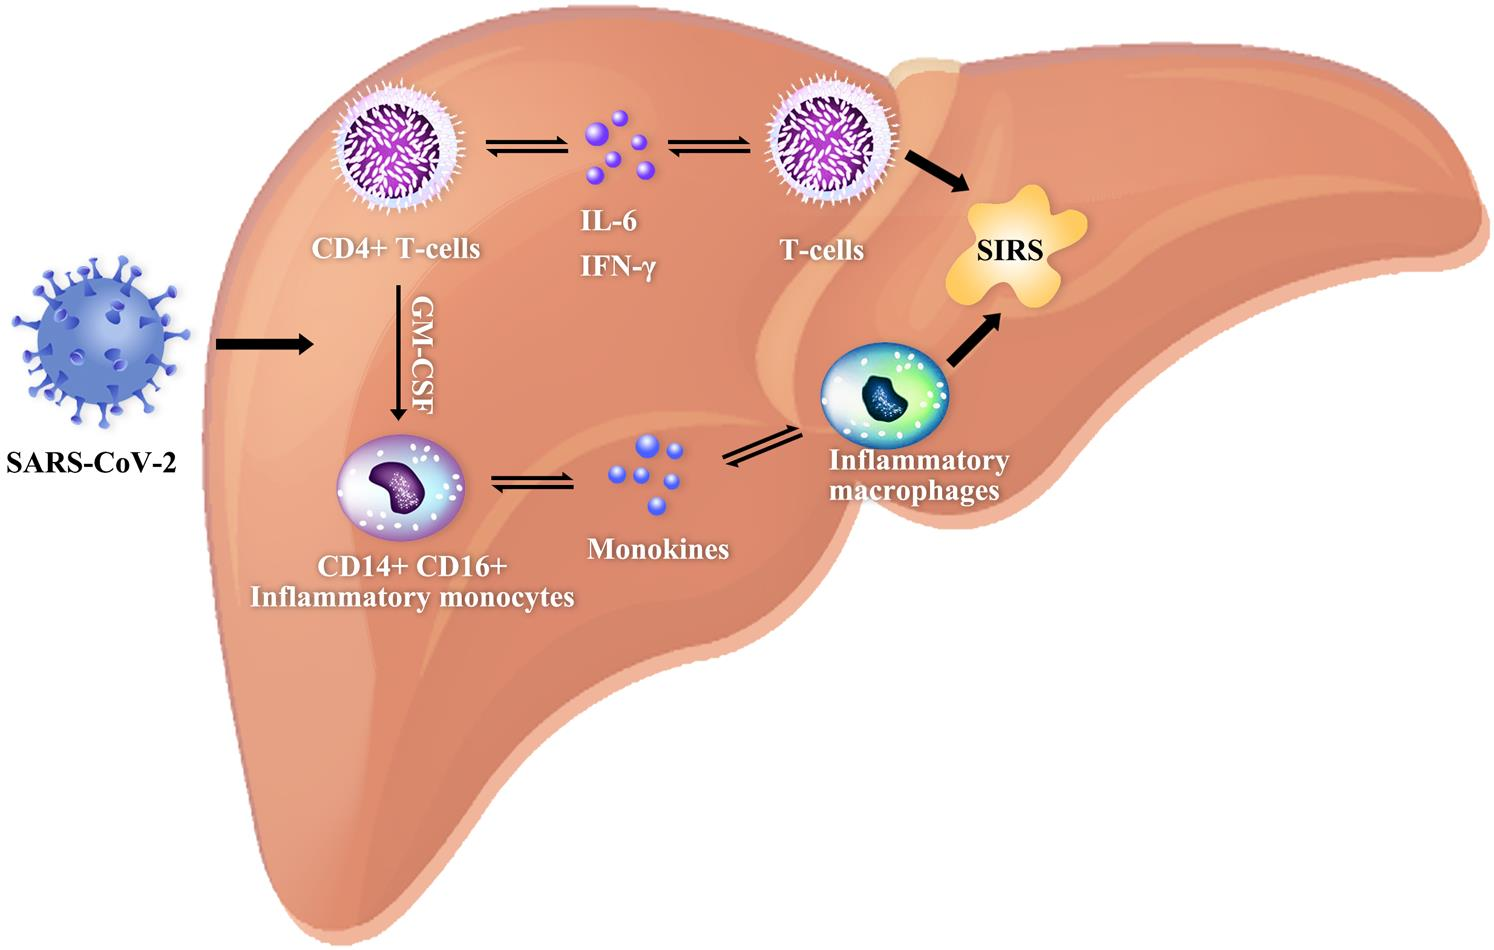 "<bold>Schematic diagram showing the systemic inflammatory response syndrome induced by SARS-CoV2.</bold> After the SARS-CoV-2 infection, pathogenic T cells are rapidly activated, producing granulocyte-macrophage colony-stimulating factor (GM-CSF), interleukin (IL)-6 and other proinflammatory factors. GM-CSF will further activate CD14<sup>+</sup>CD16<sup>+</sup> inflammatory monocytes, producing a larger amount of IL-6 and other proinflammatory factors, and thereby inducing an inflammatory ""storm"" that leads to immune damage to other organs, such as the lungs and the liver. Both IL-6 and GM-CSF are two key proinflammatory factors that trigger the inflammatory ""storm"" in patients with COVID-19."